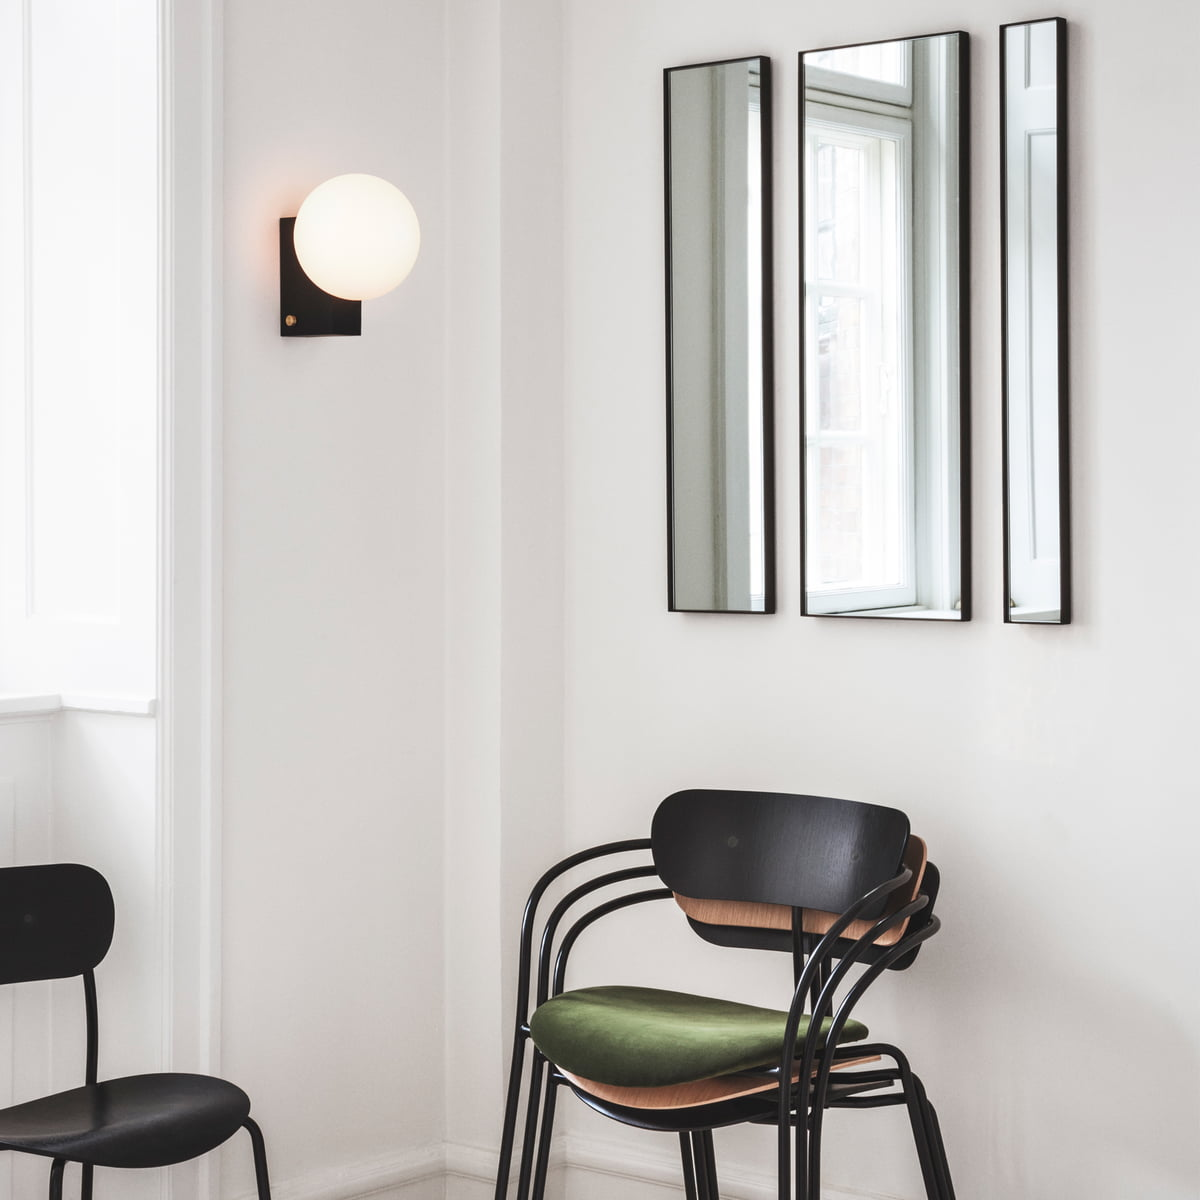 Amore wall mirror journey table and wall lamp pavilion armchair and pavilion chair by